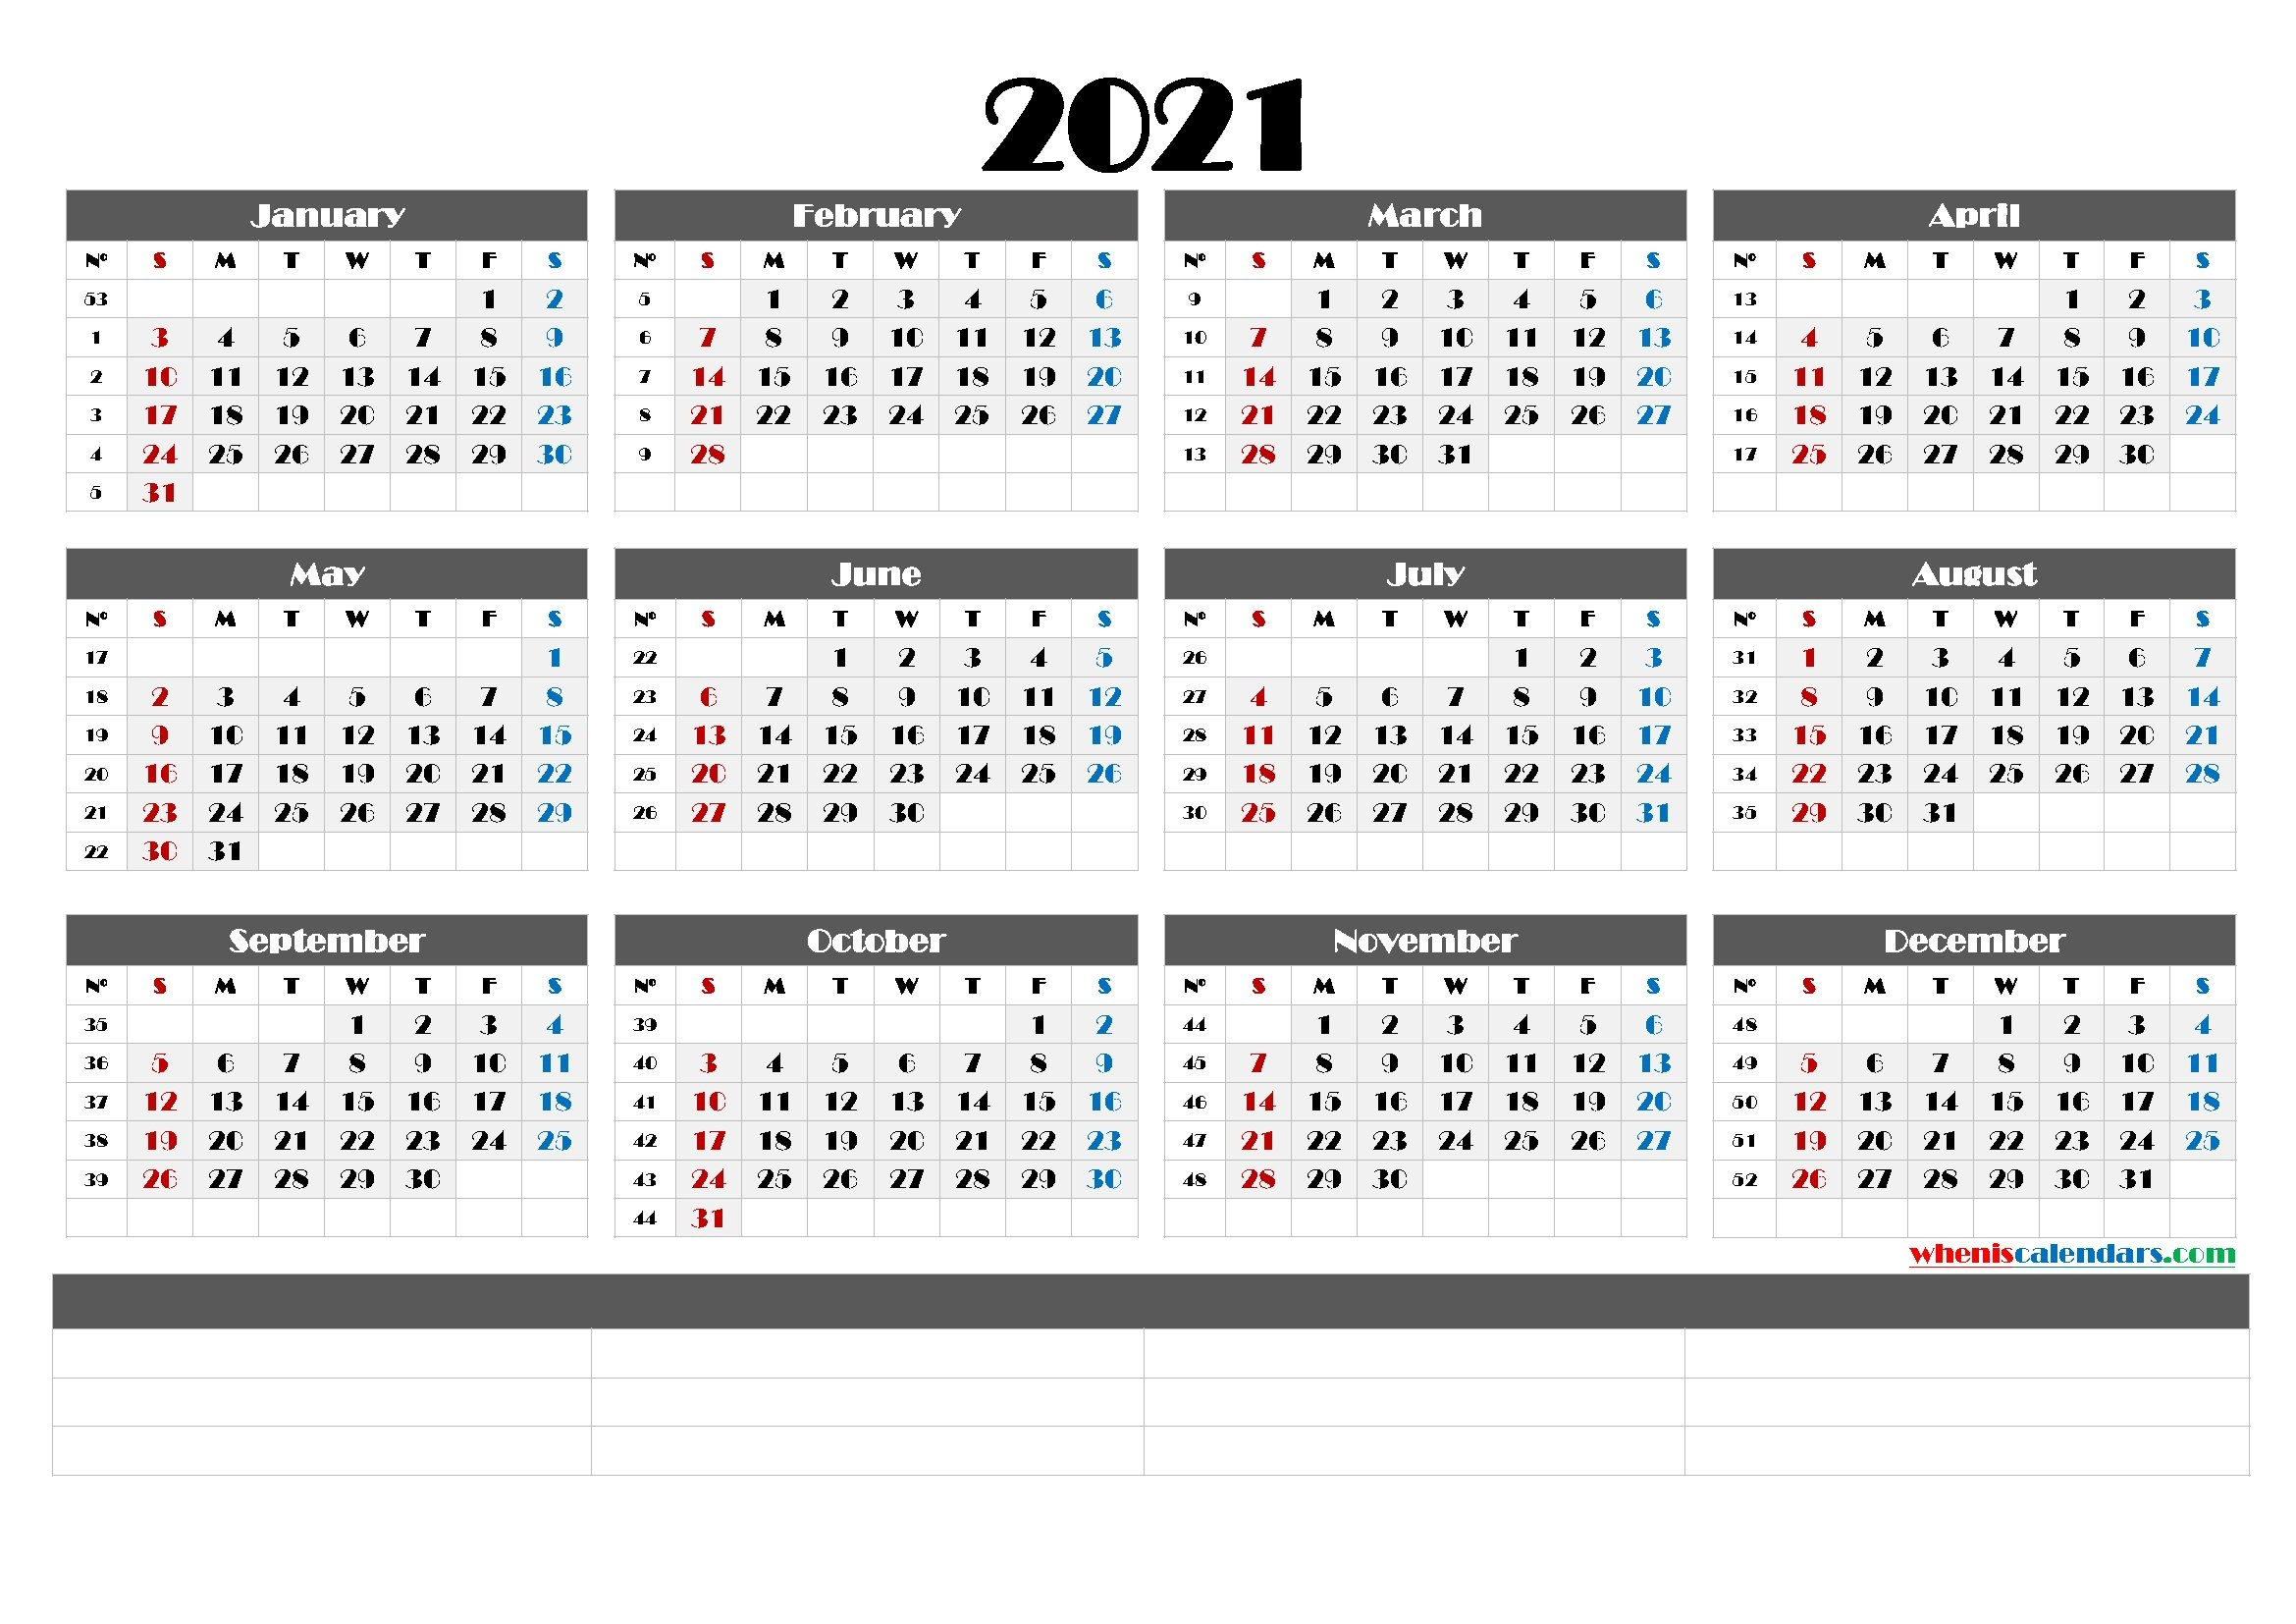 2021 Printable Yearly Calendar With Week Numbers (6 Templates) pertaining to Large Print Free Printable Calendar 2021